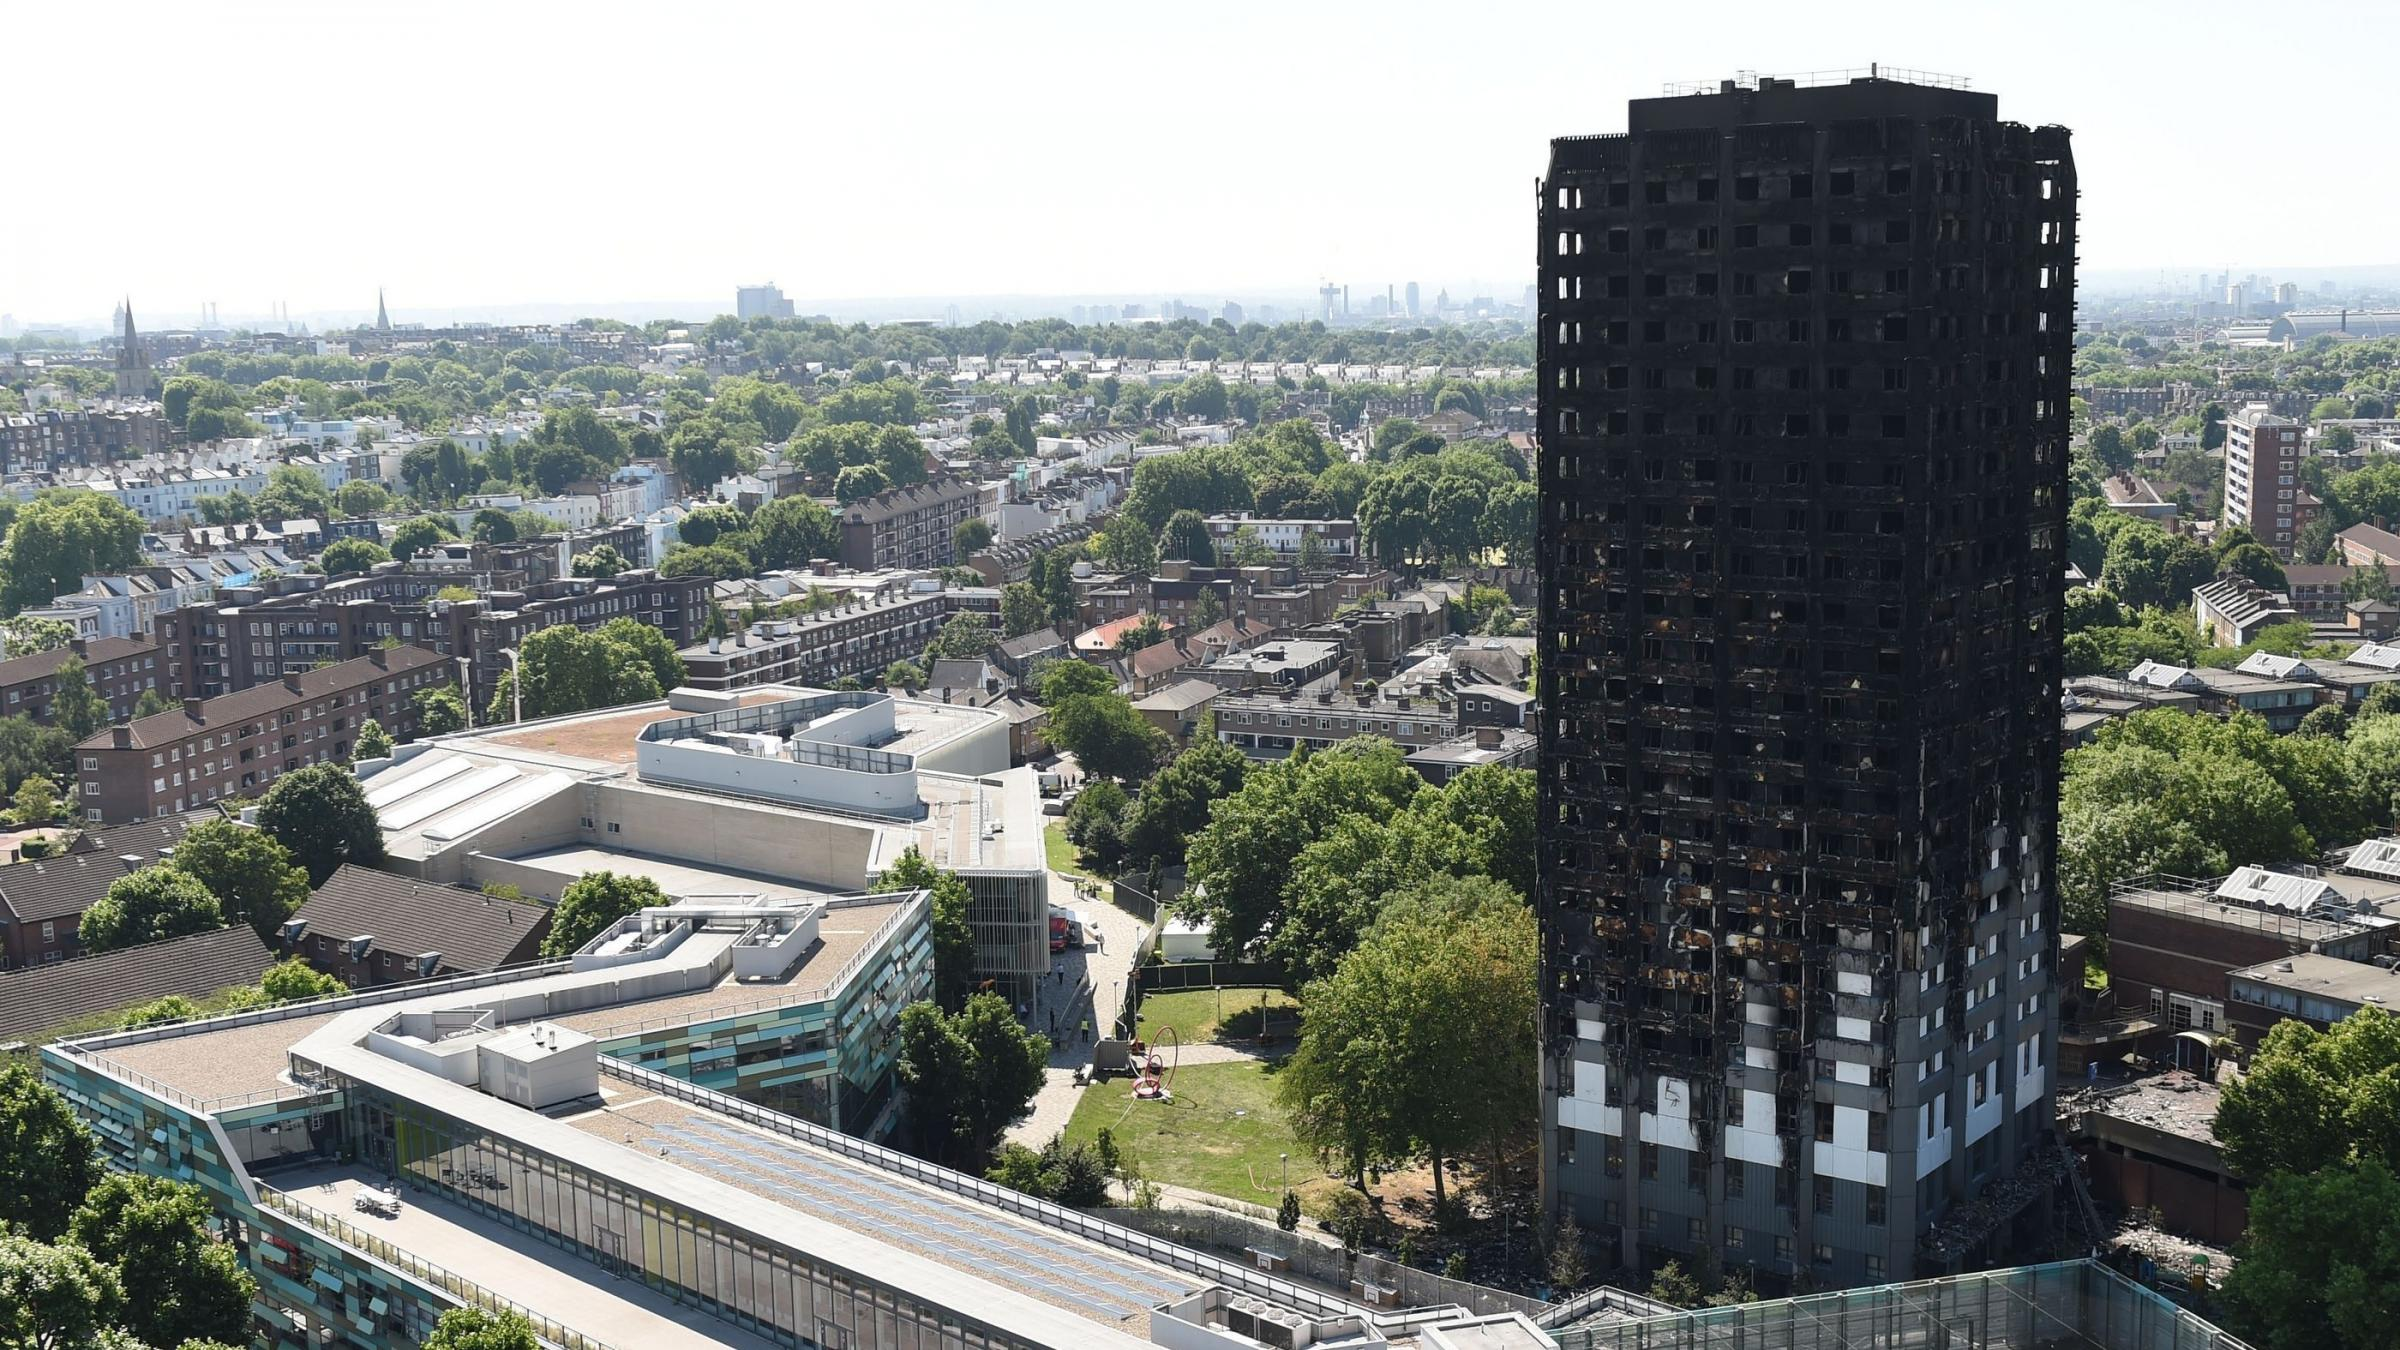 Police release first images of 'indescribable' horror from inside burned-out Grenfell Tower